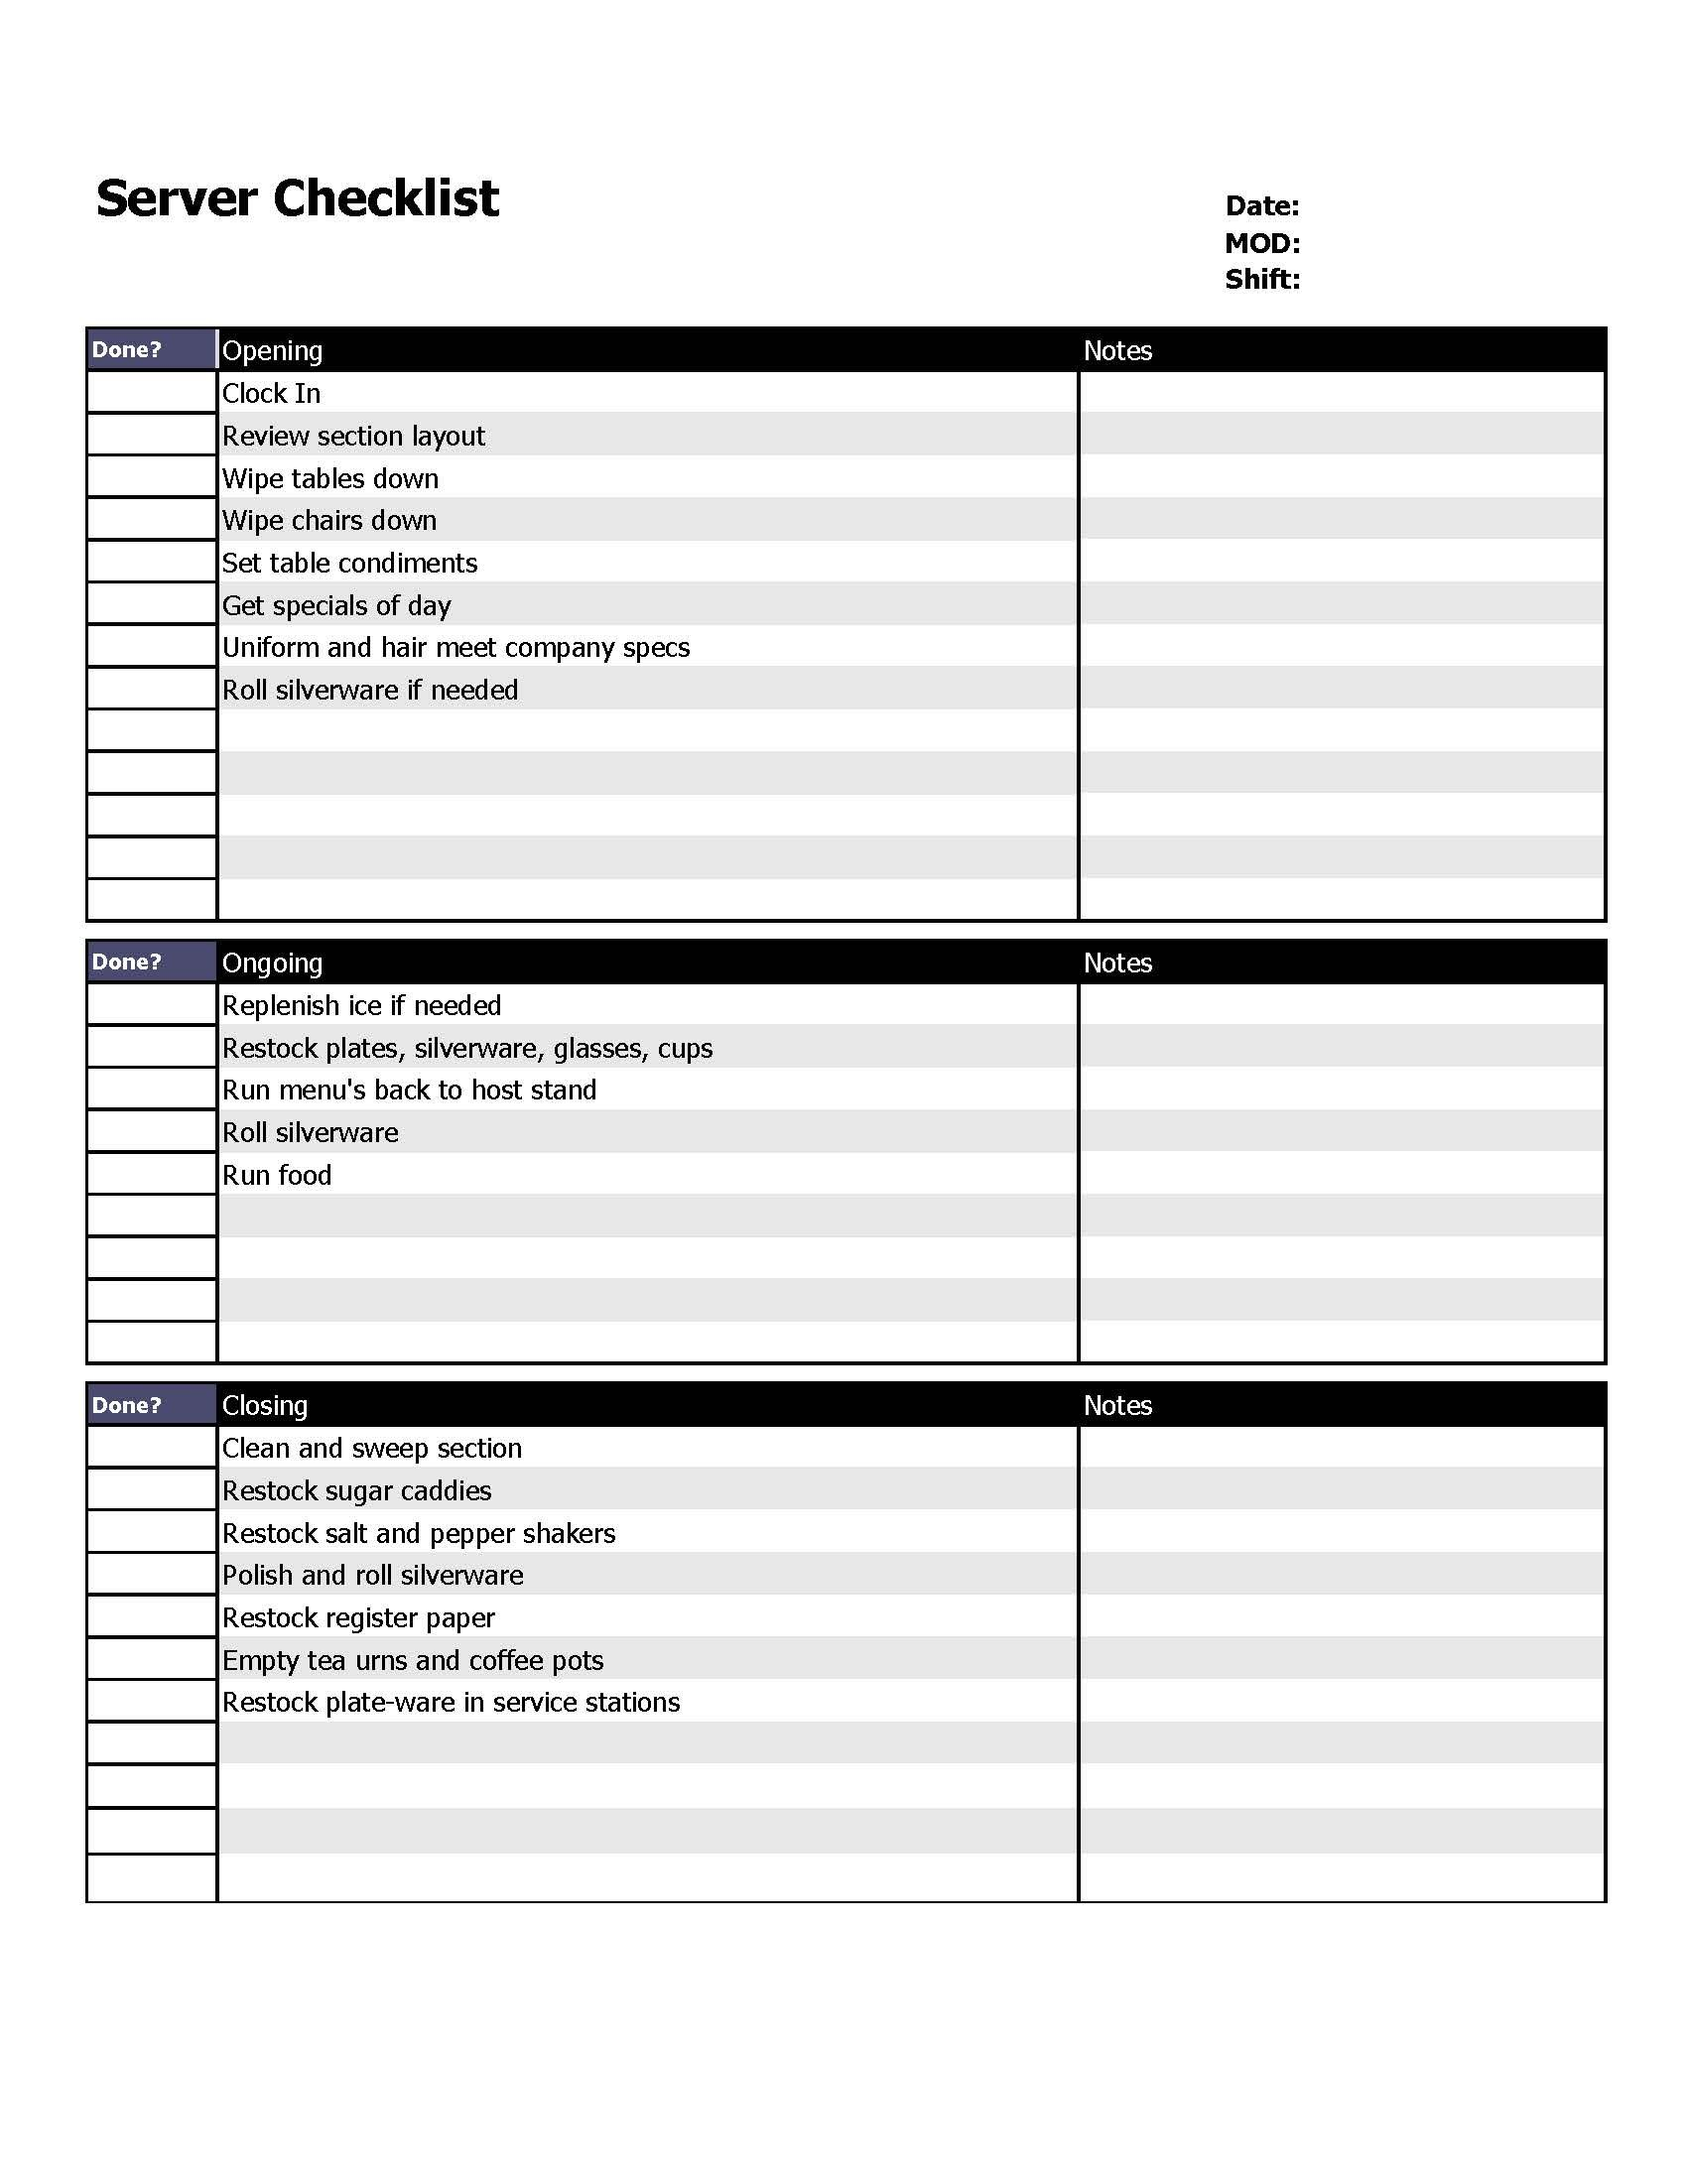 Restaurant server checklist form. | Bar | Pinterest | Formato ...